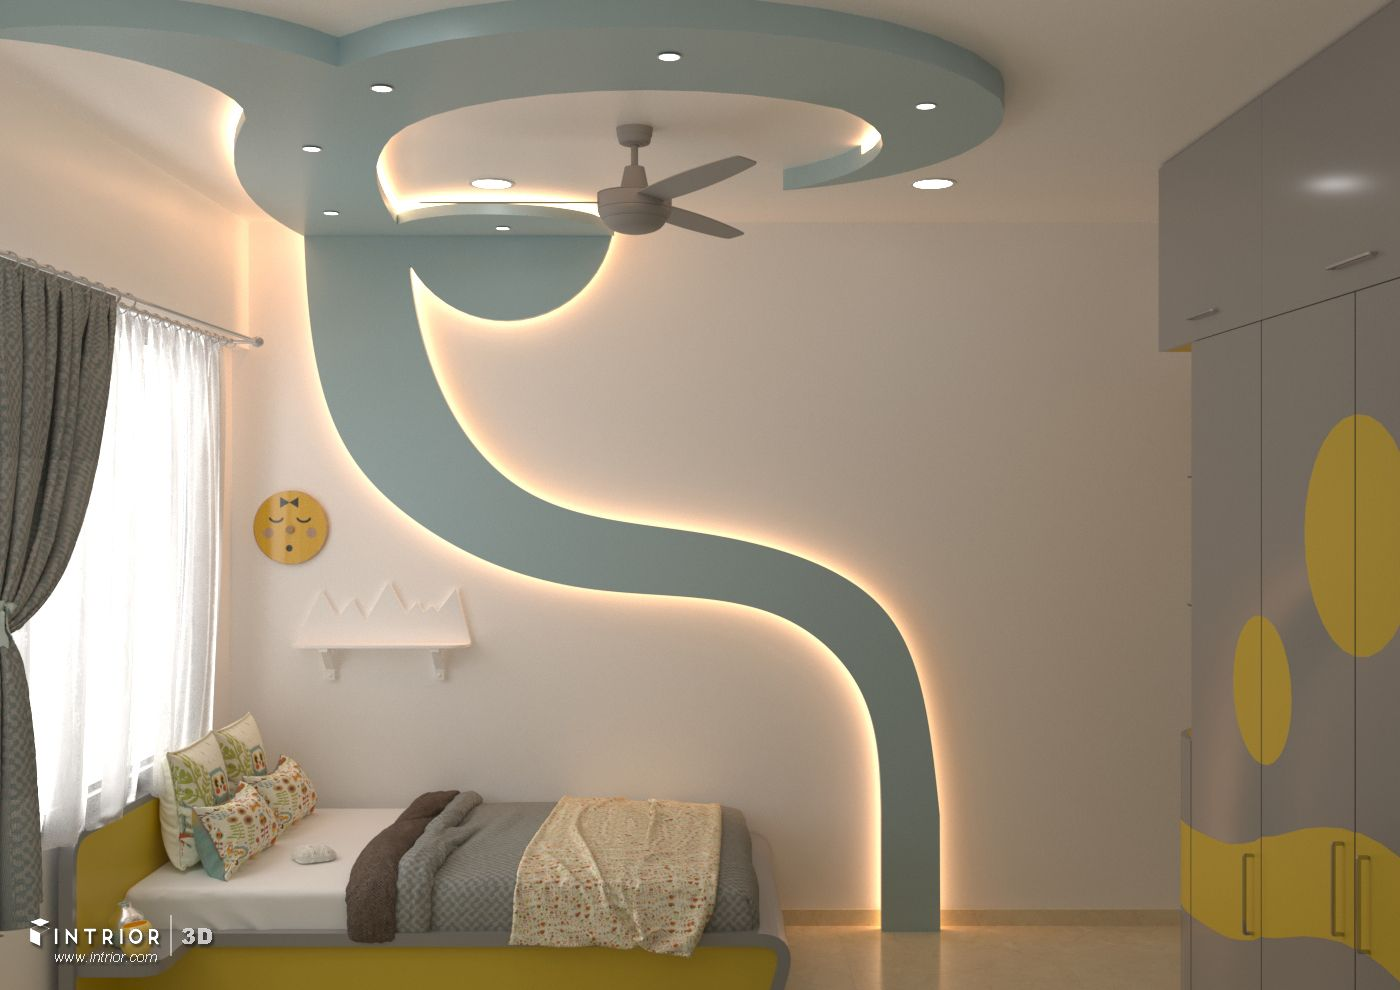 Children Room Design | Kids interior room, Kids room ...